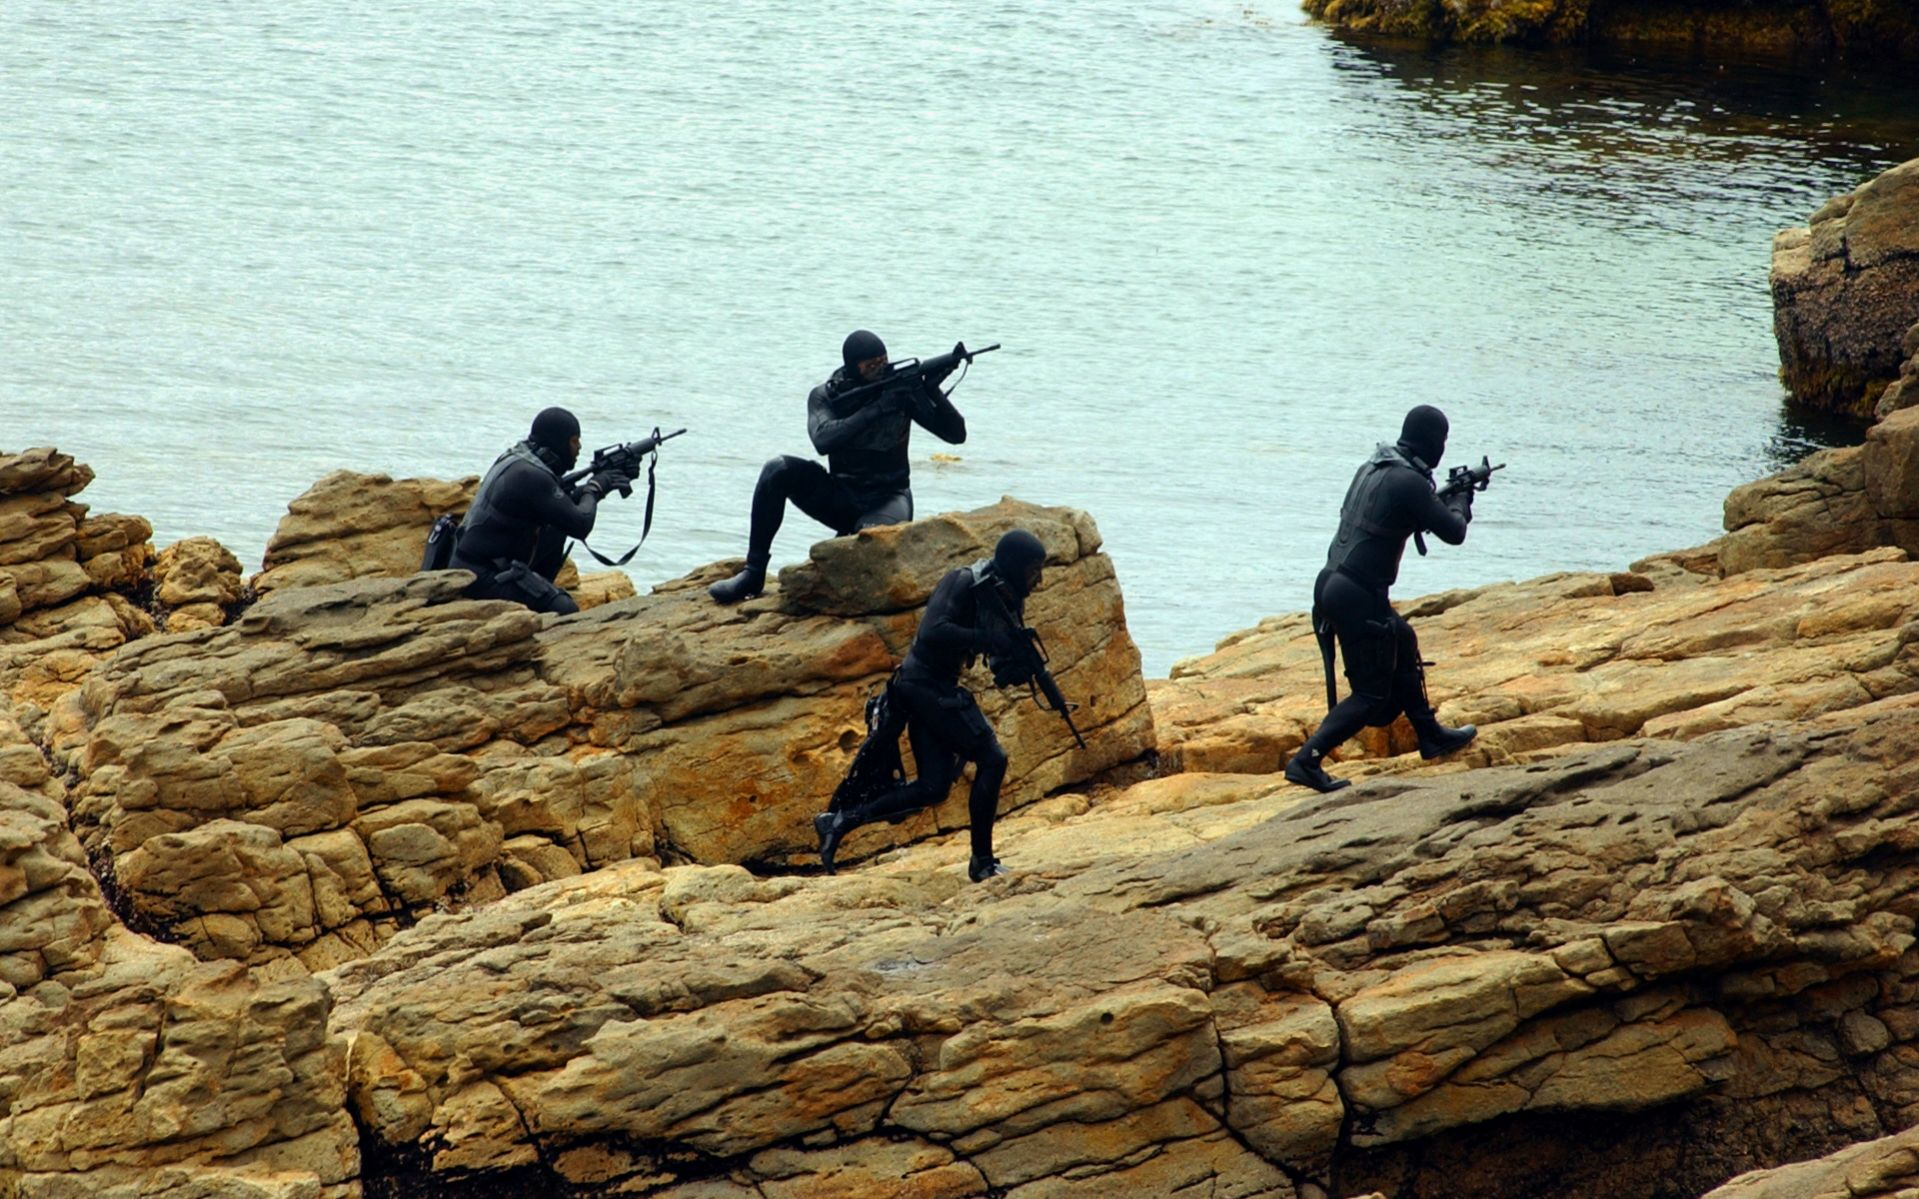 Navy Seals Wallpaper For Iphone Amazing hd navy wallpapers and 1919x1199